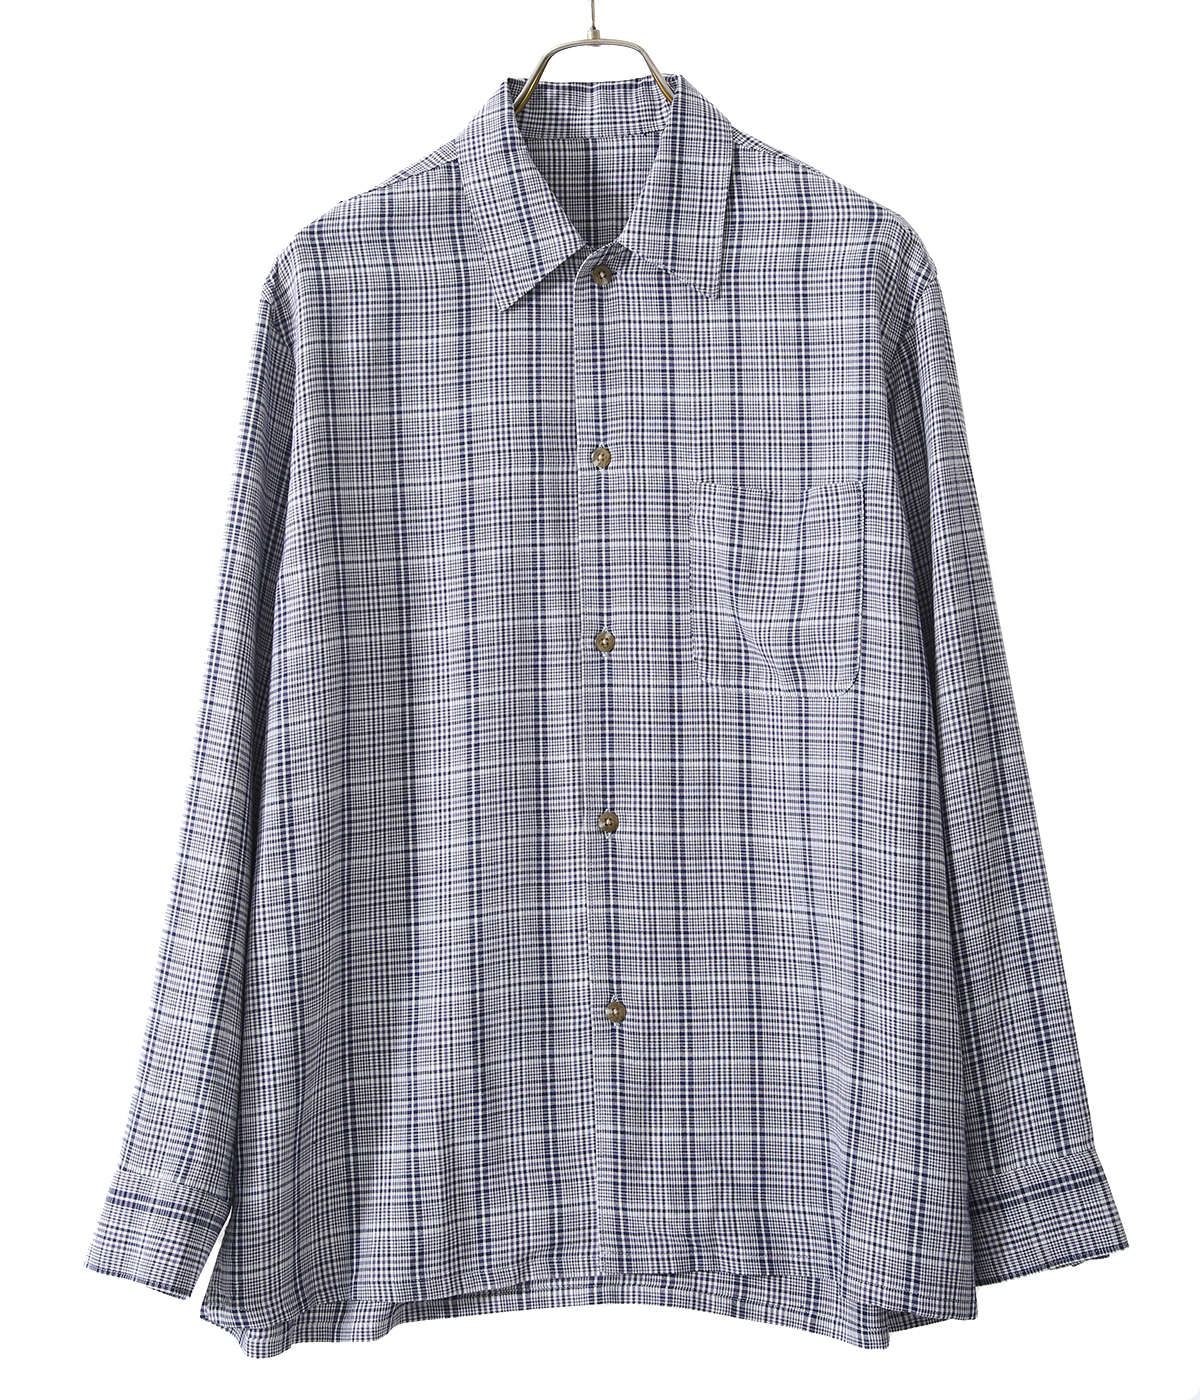 RAYON POPLIN / OPEN COLLAR L/S SHIRTS